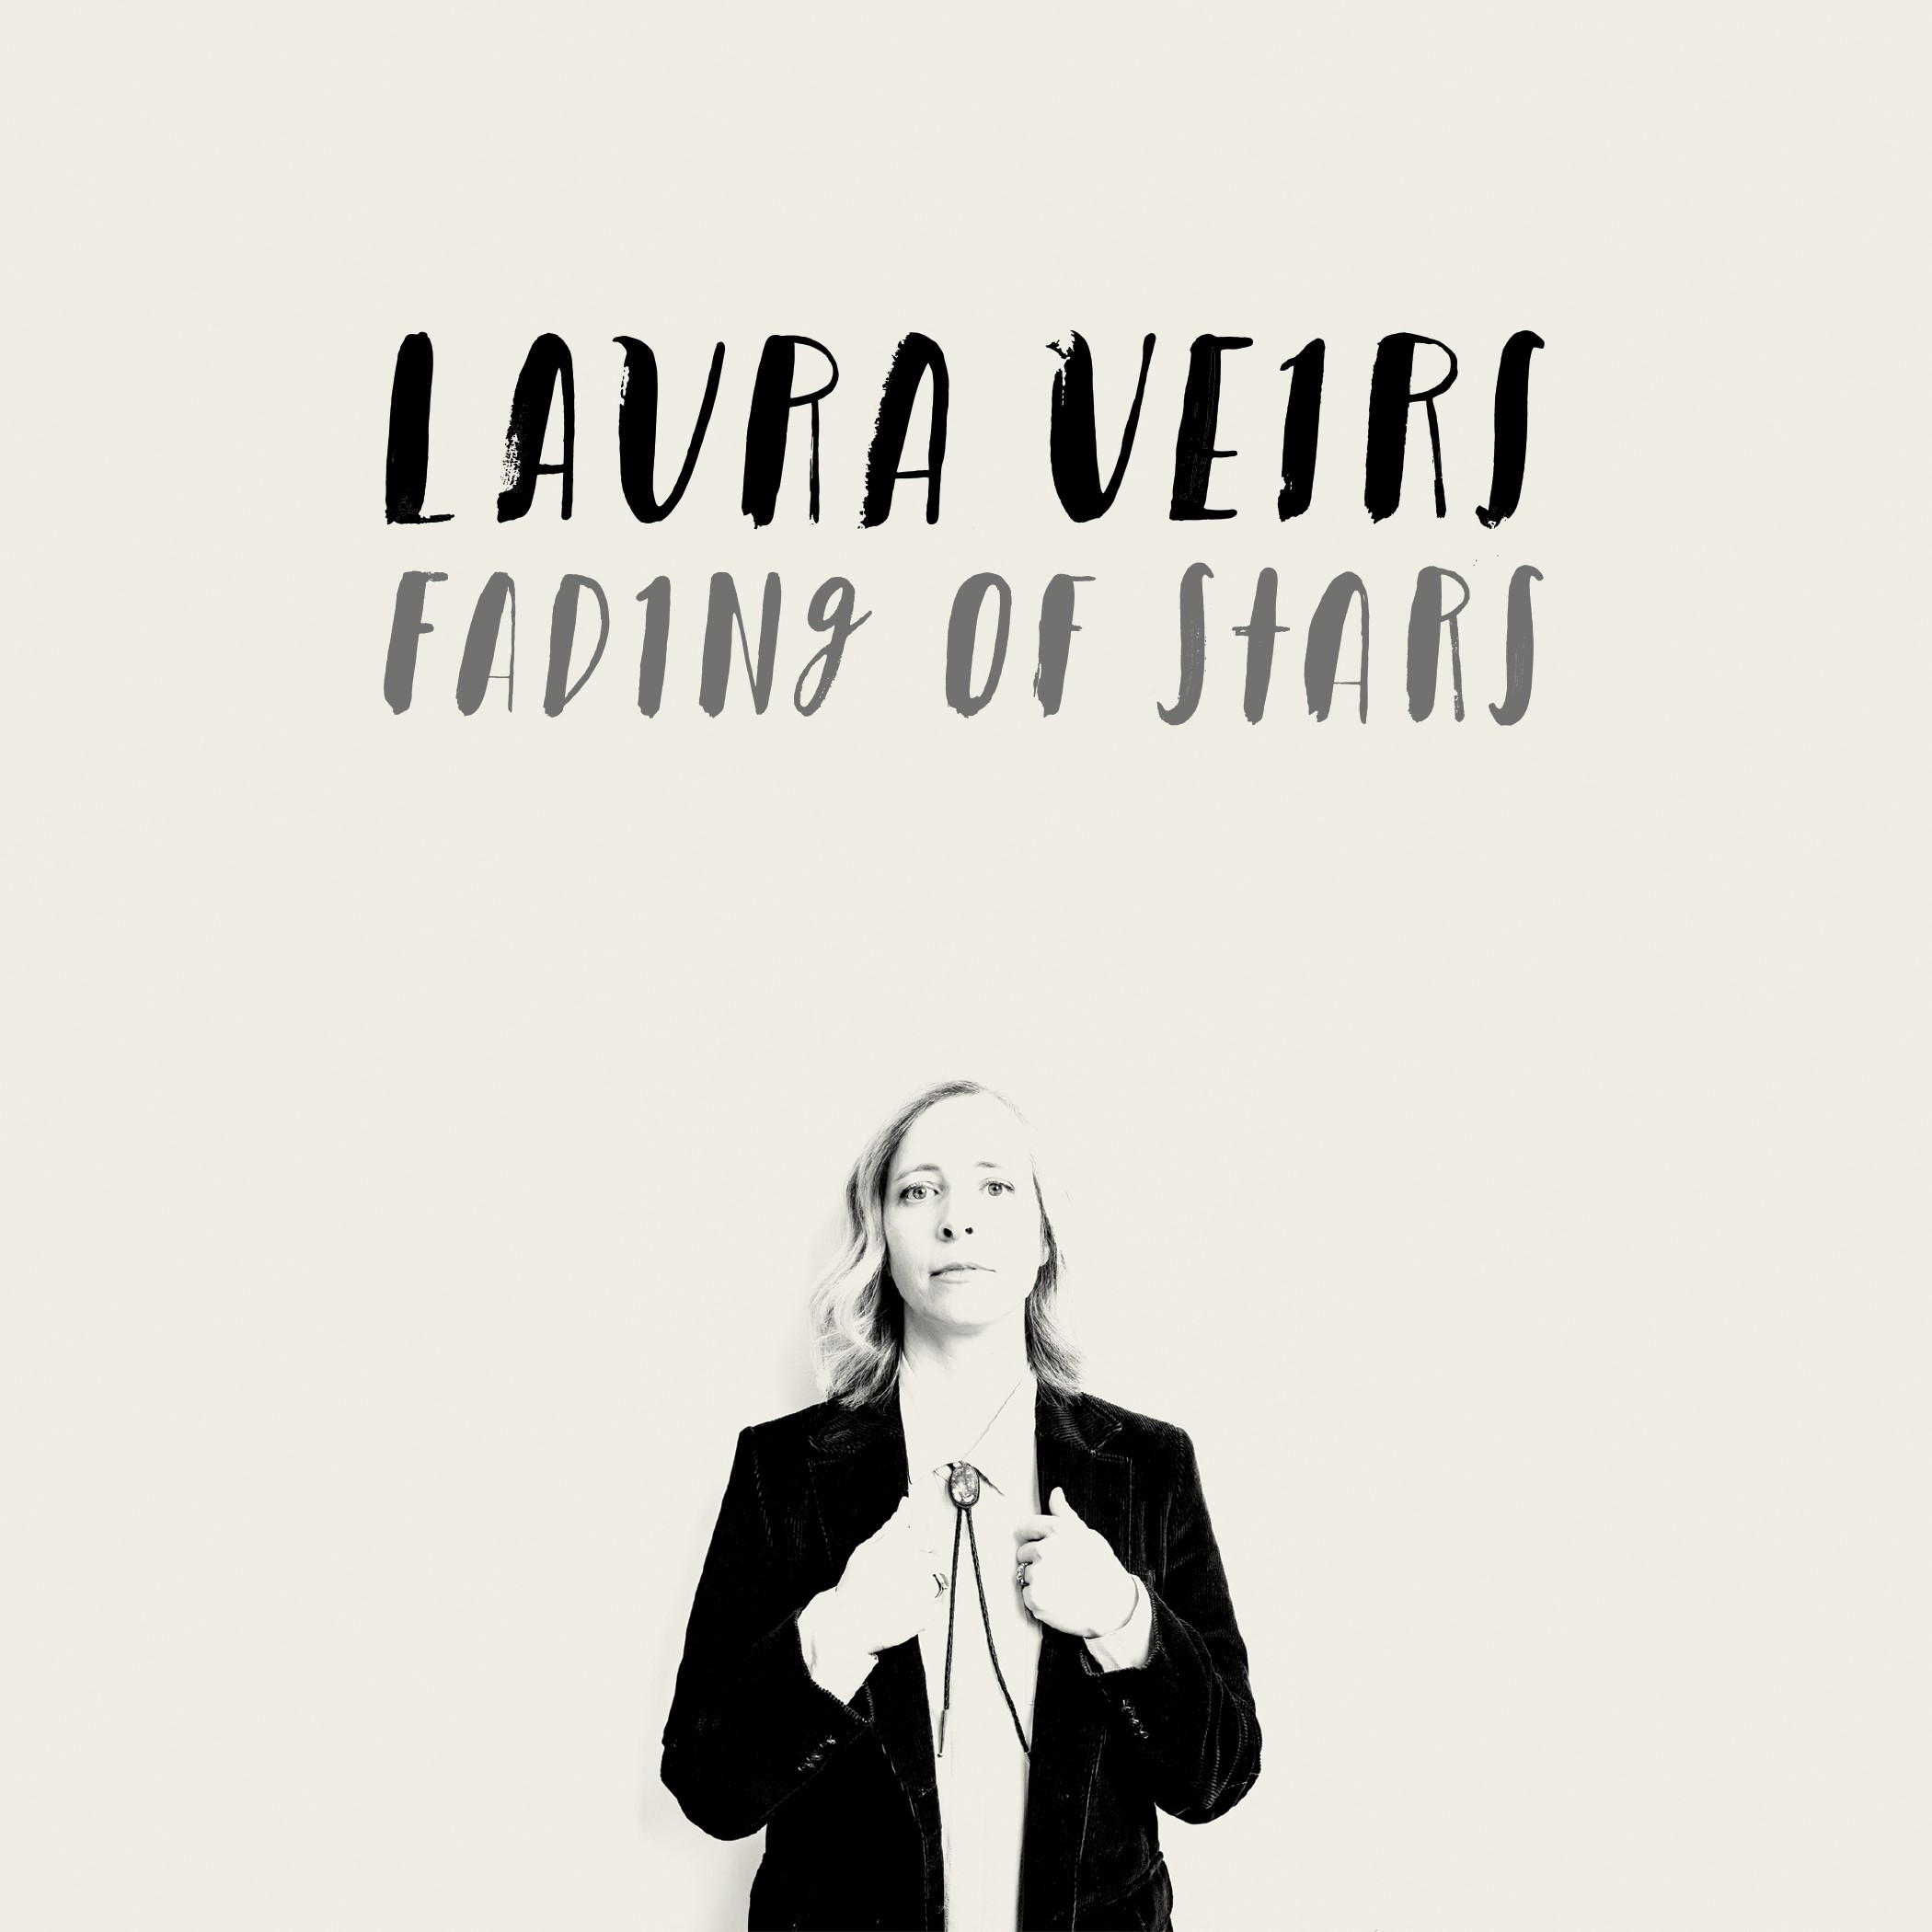 Laura Veirs - Fading of Stars